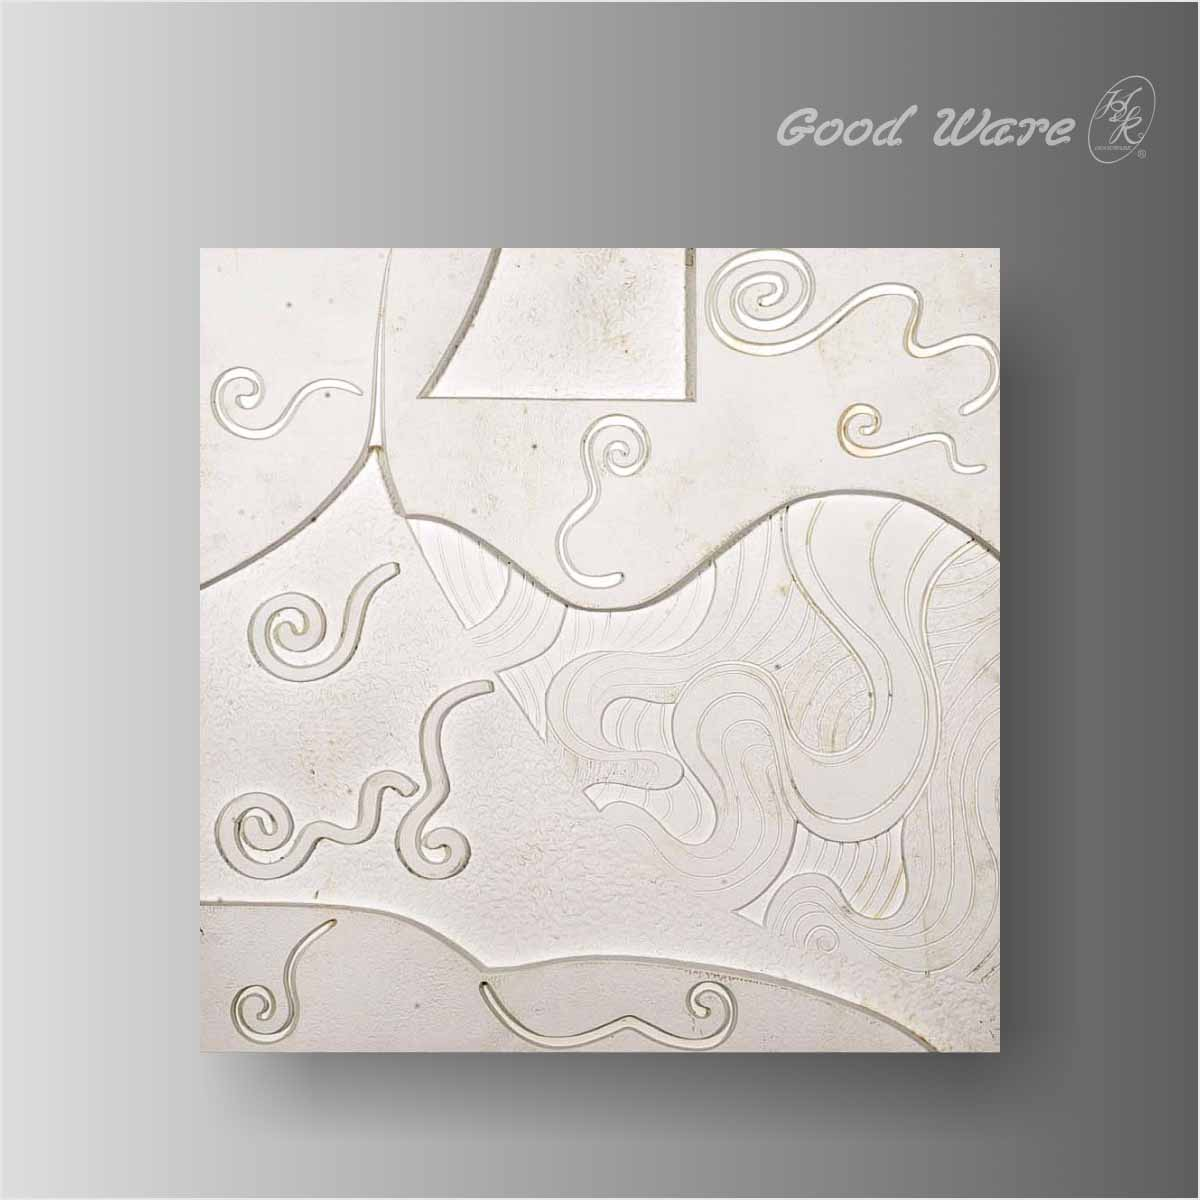 Polyurethane wall relief panels for sale